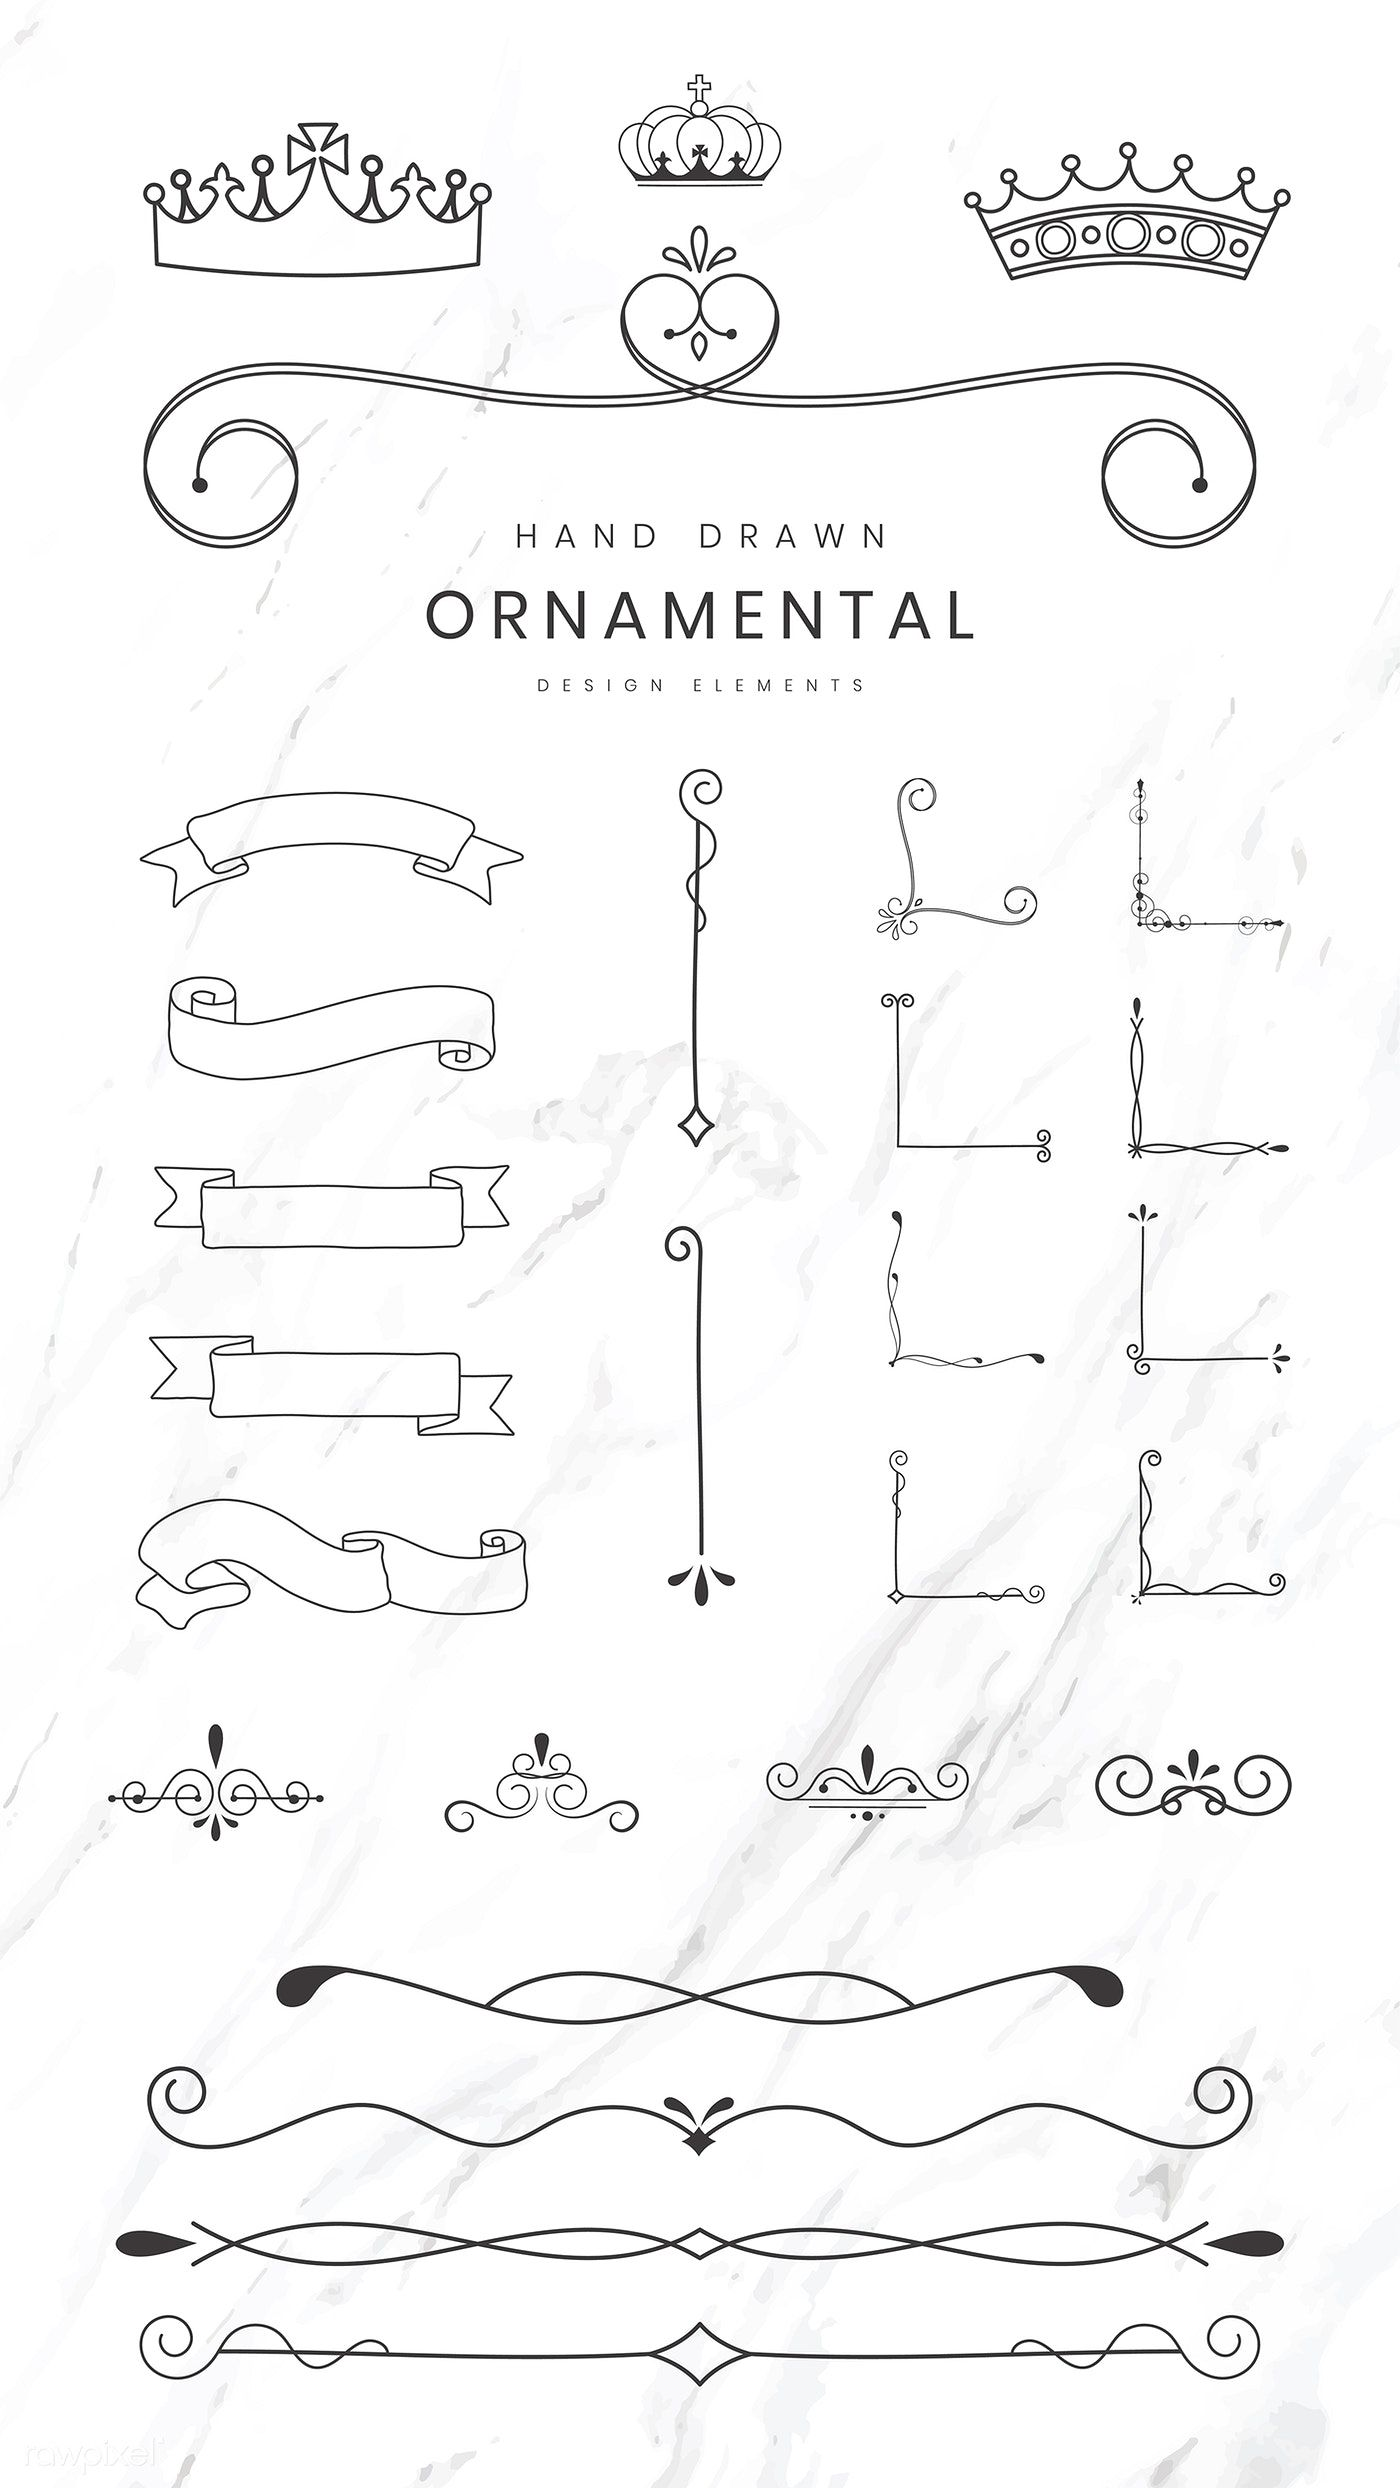 Download Premium Vector Of Hand Drawn Ornamental Design Elements Vector How To Draw Hands Design Elements Frame Border Design